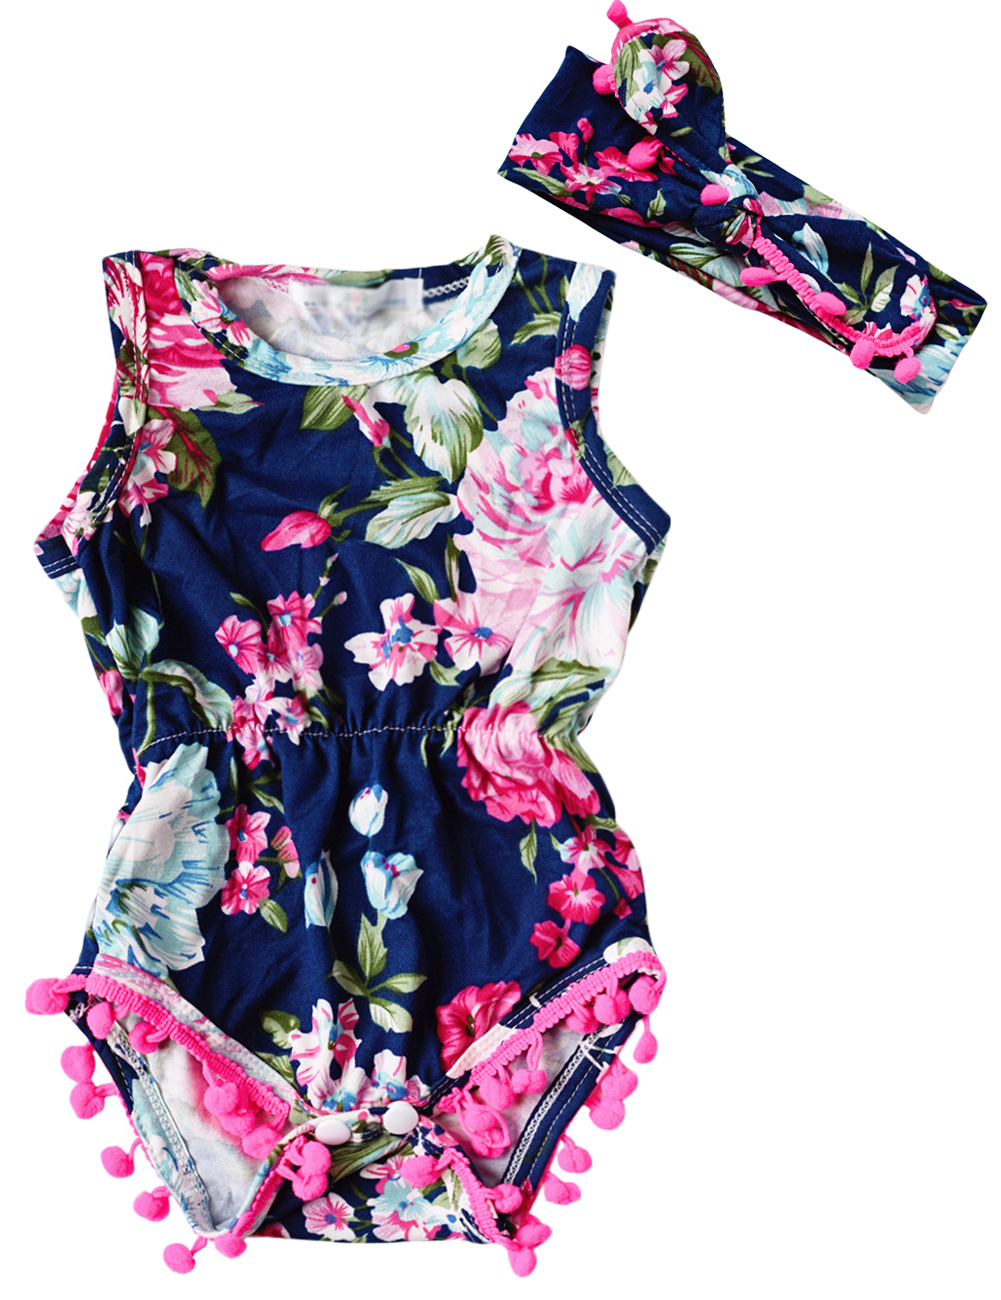 2017 New Summer Romper Casual Clothes Cute Newborn Baby Girl Clothes Flower Jumpsuit Romper Mother & Kids Girls' Baby Clothing Lovely Headband Outfits